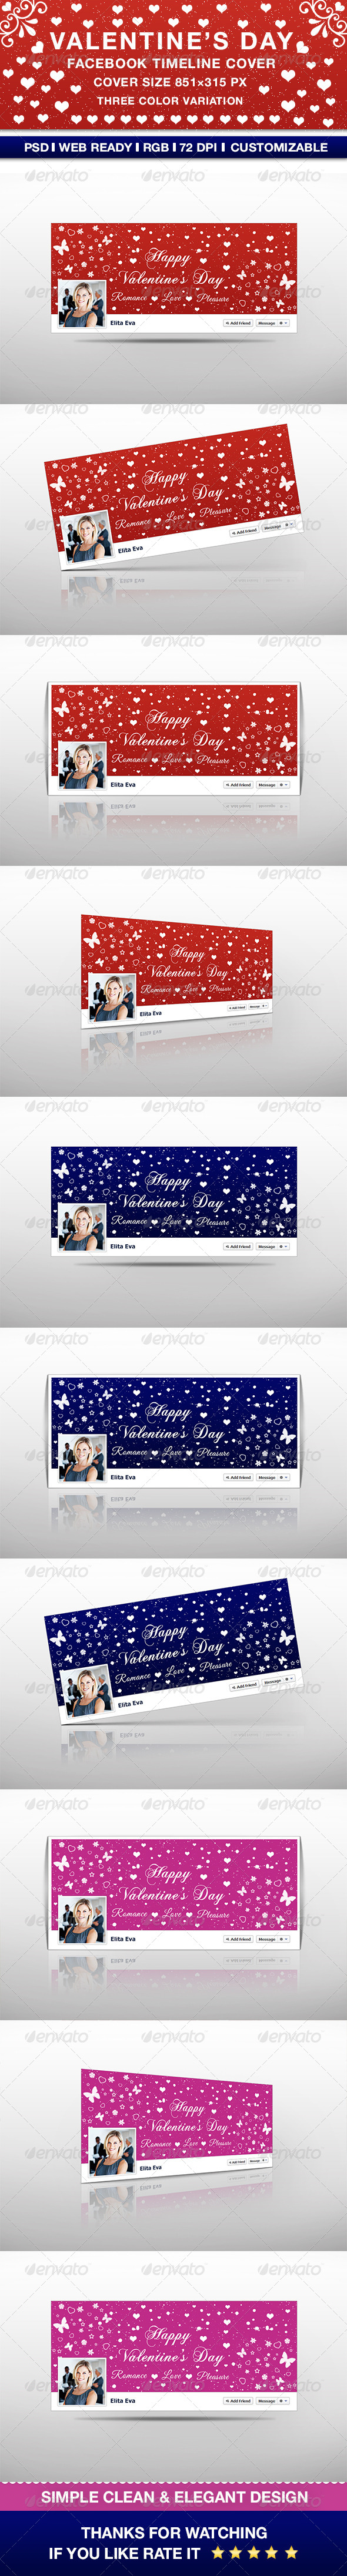 GraphicRiver Valentine s Day Facebook Timeline Cover 6670941